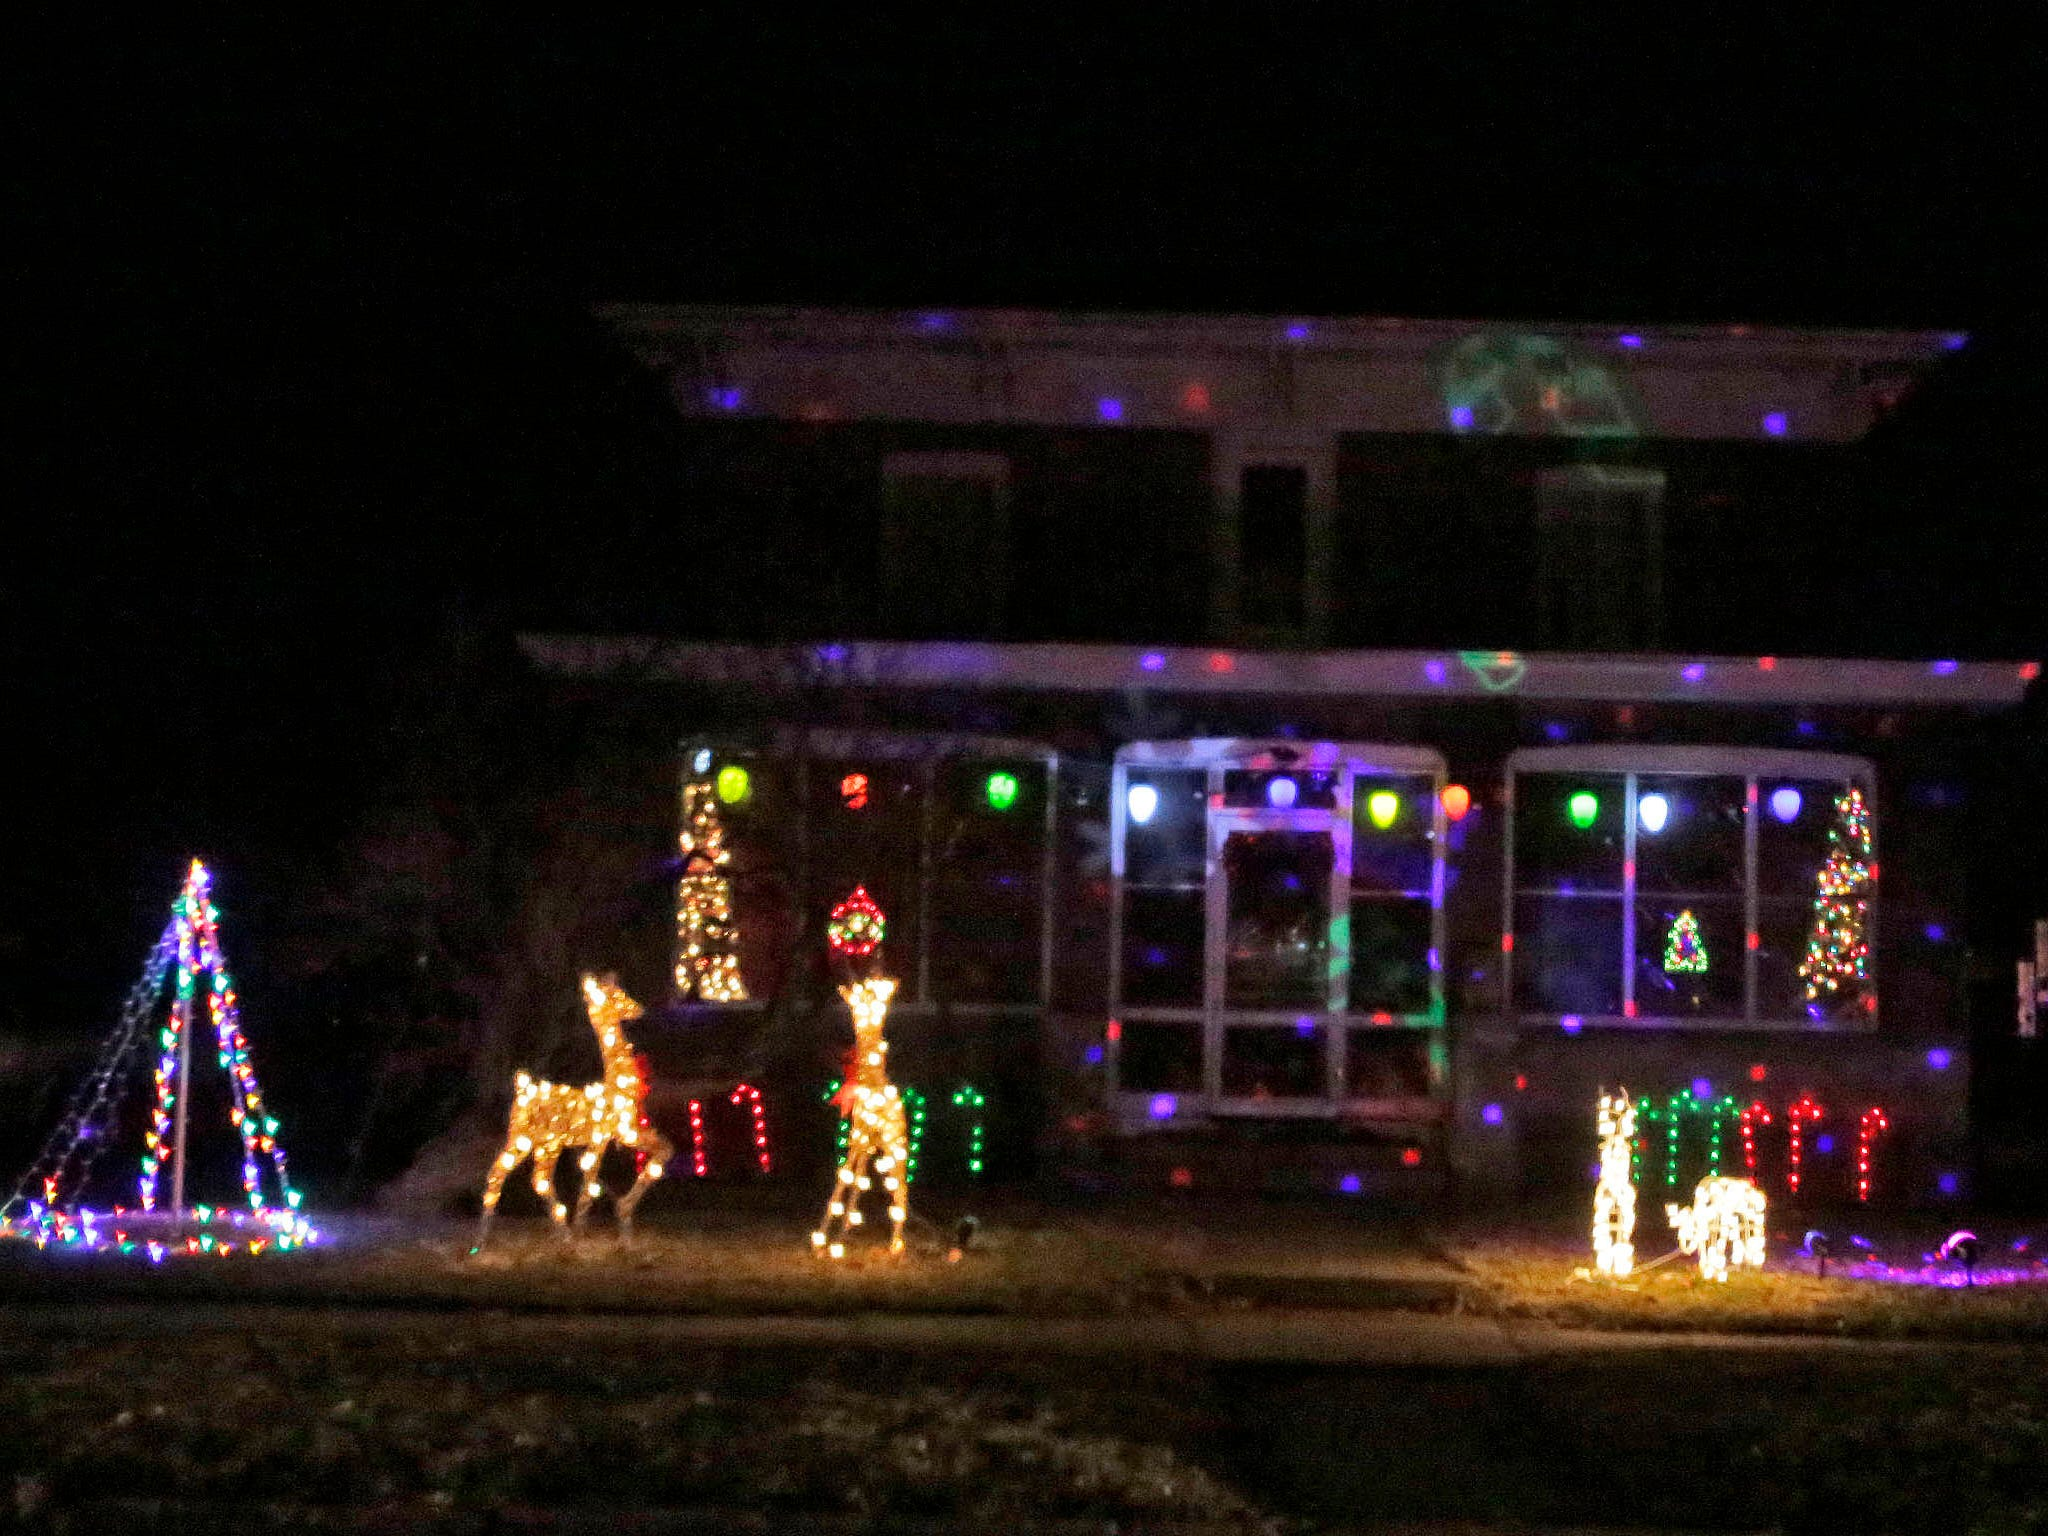 A Christmas display Saturday, December 15, 2108, in Plymouth, Wis.